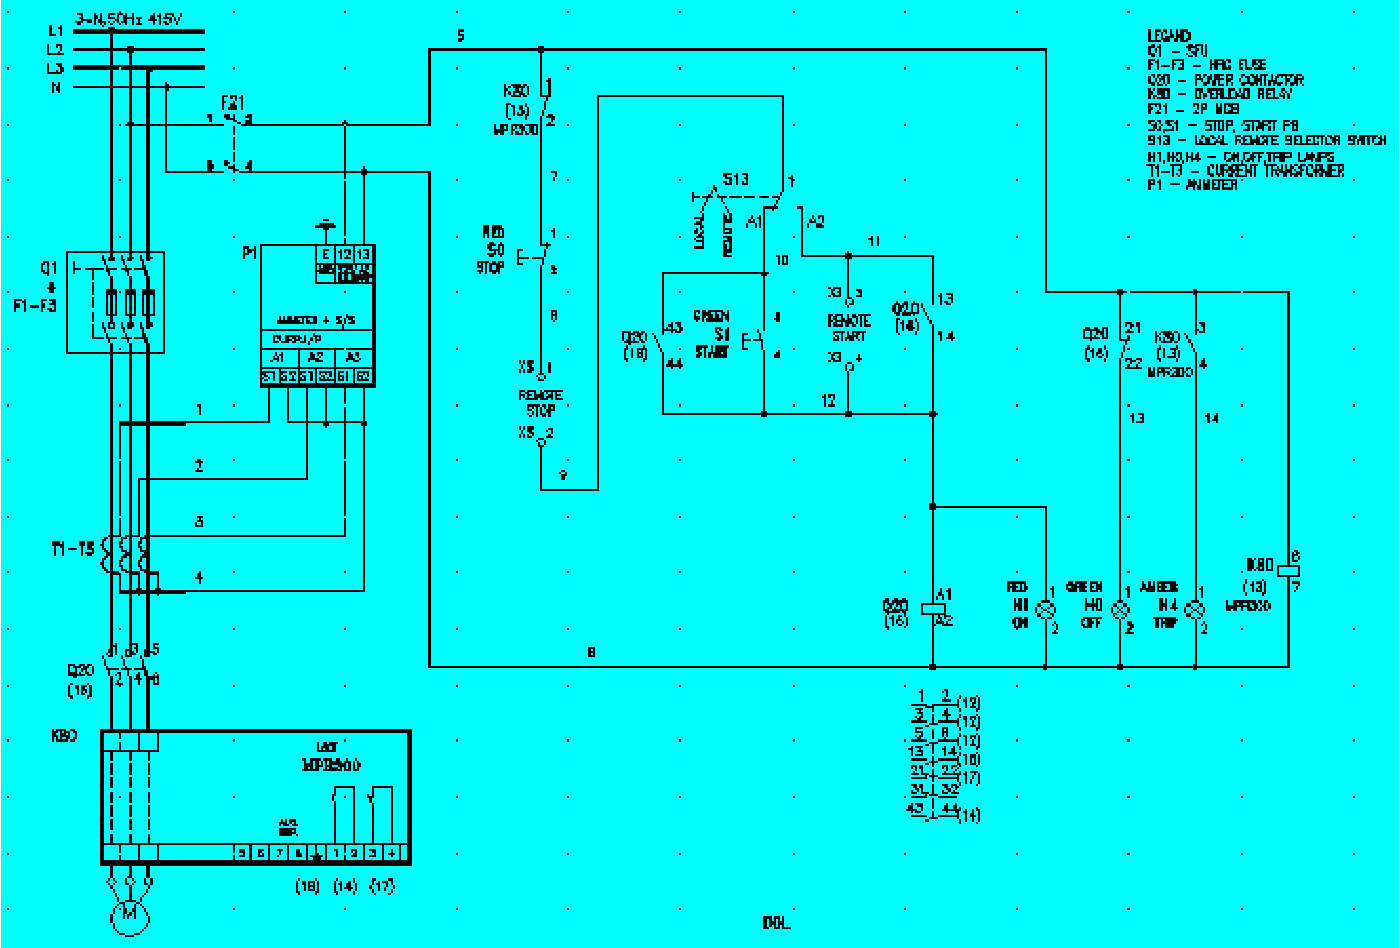 rtcc panel wiring diagram sub panel to main panel wiring diagram